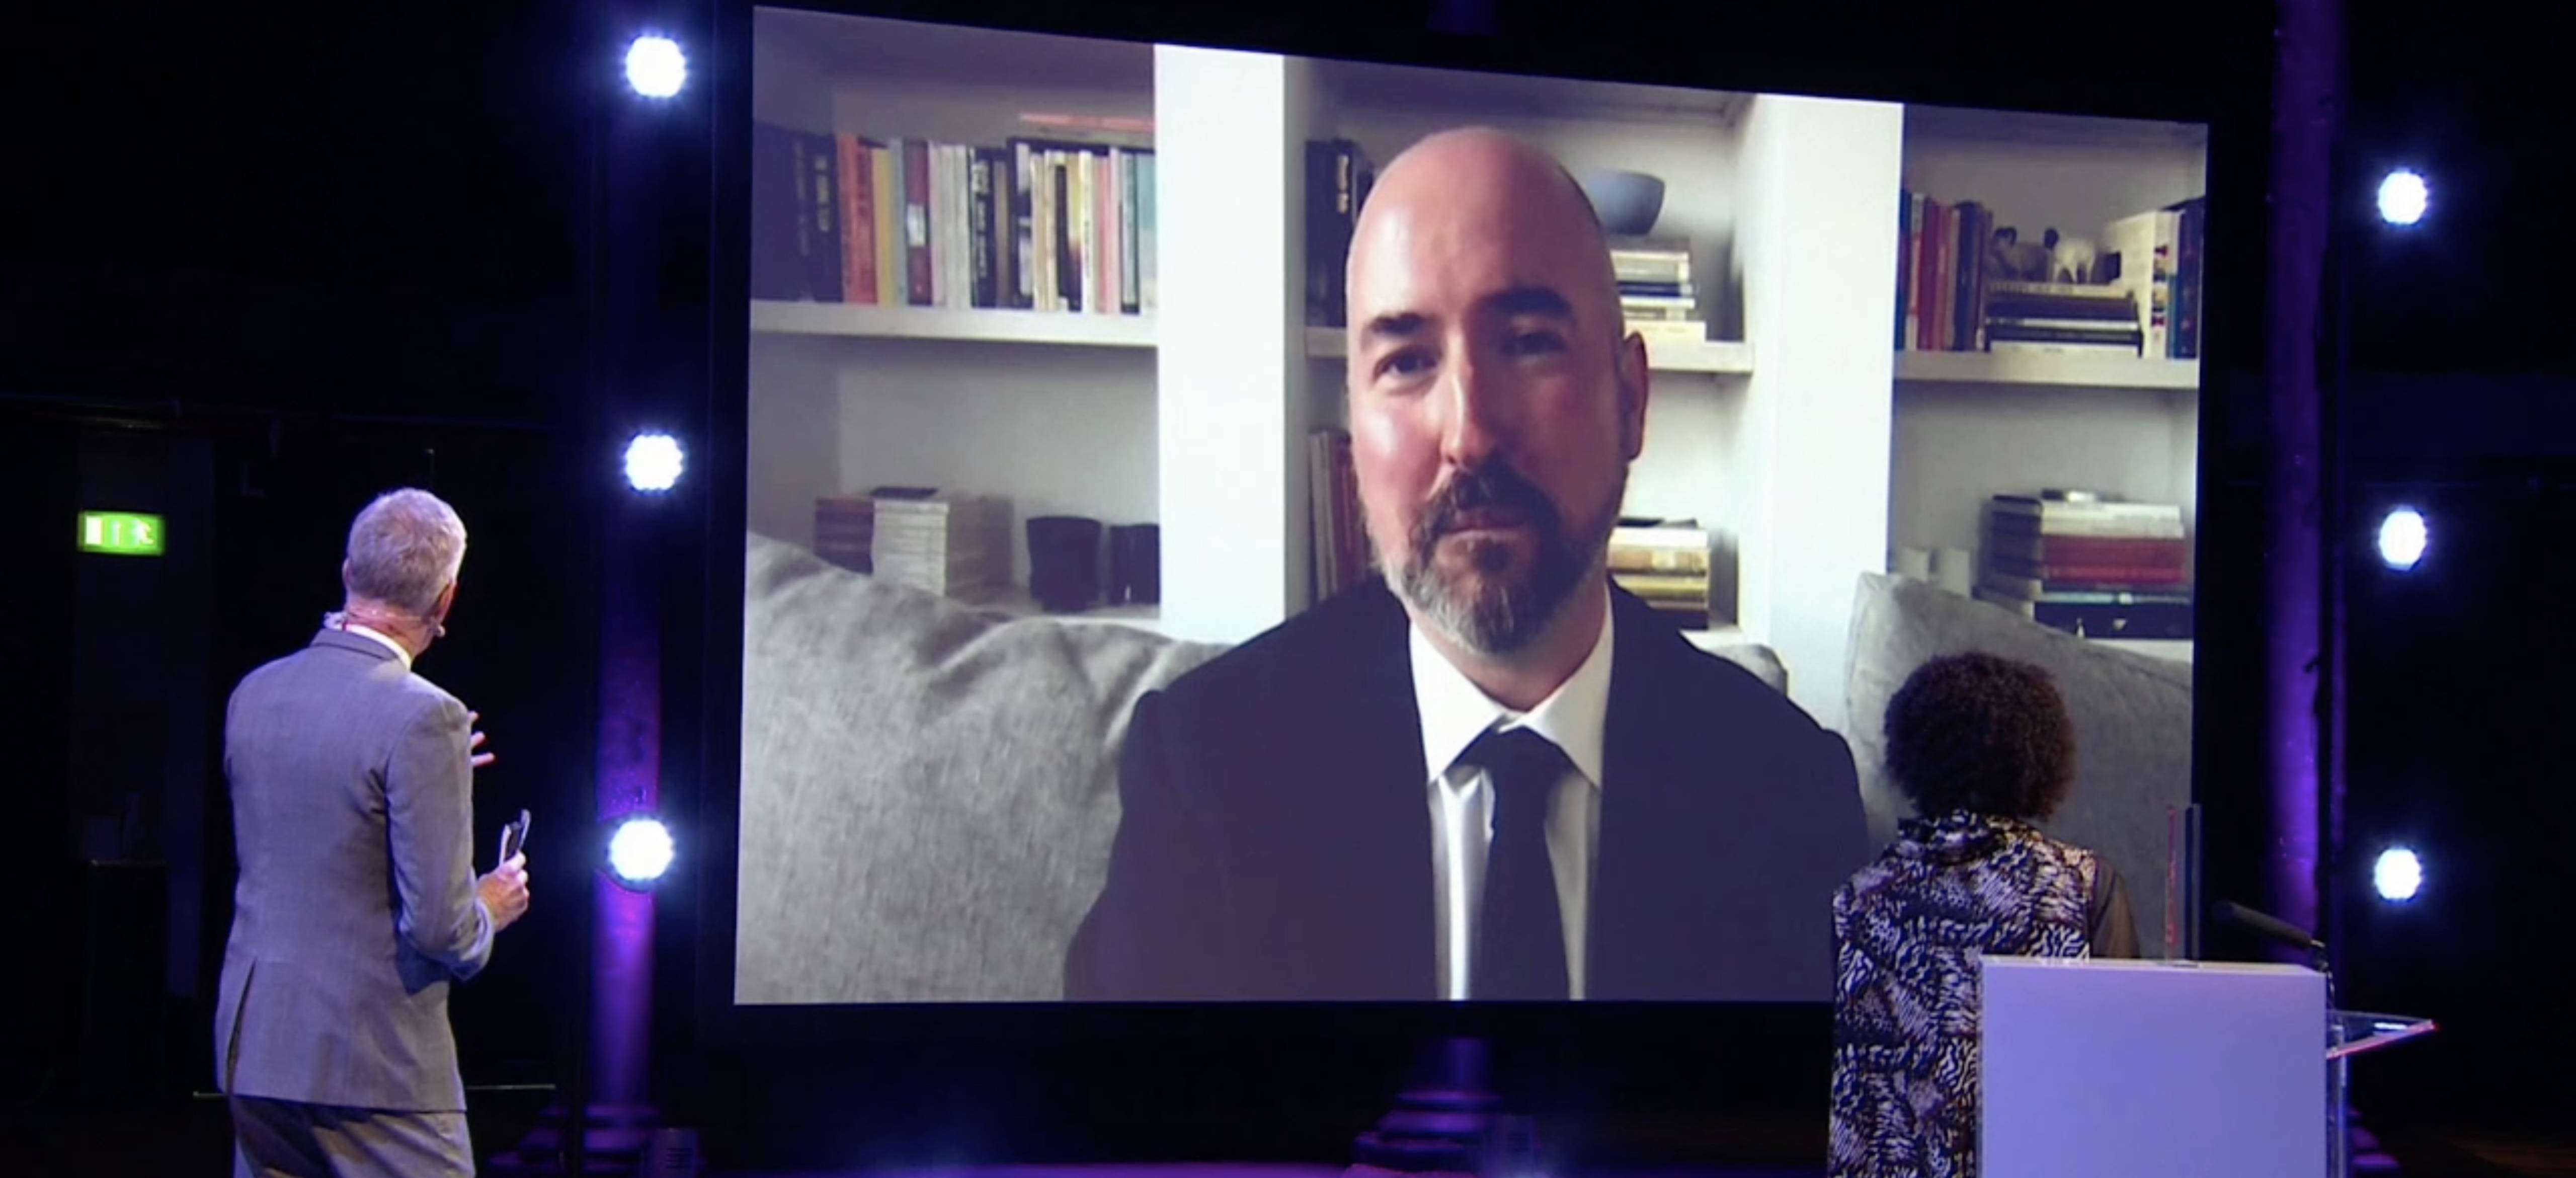 """Douglas Stuart accepts the 2020 Booker Prize for his debut novel, """"Shuggie Bain,"""" during a virtual ceremony streamed by the BBC on Nov. 19, 2020. (Courtesy of BBC)"""